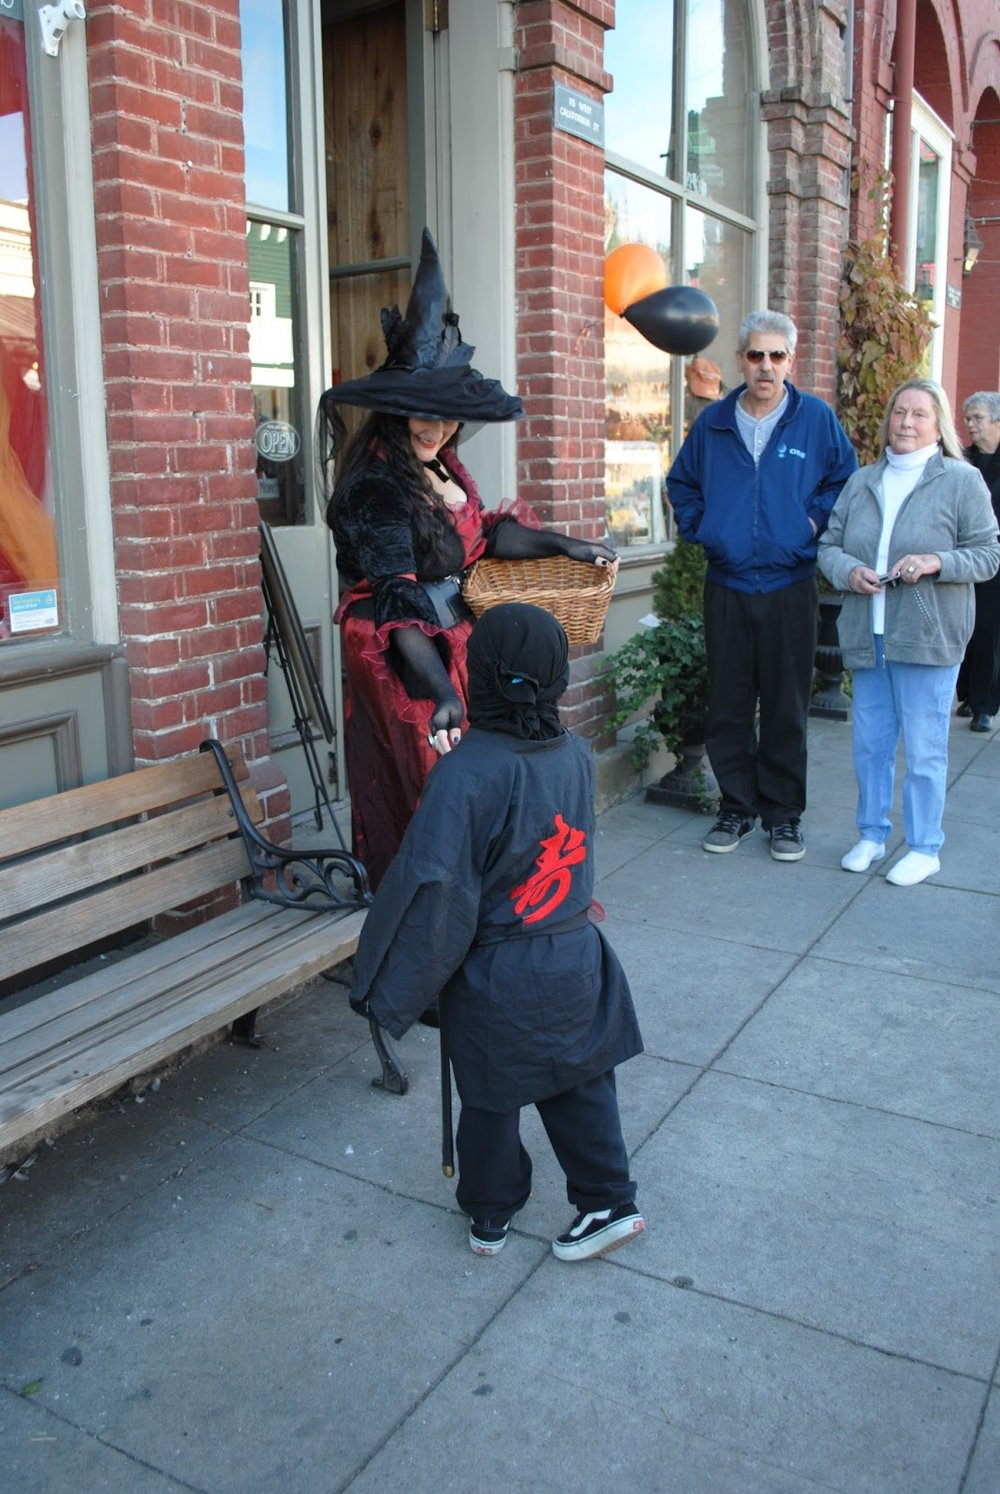 JACKSONVILLE'S HARVEST HALLOWEEN PROMENADE - What to do in Southern Oregon